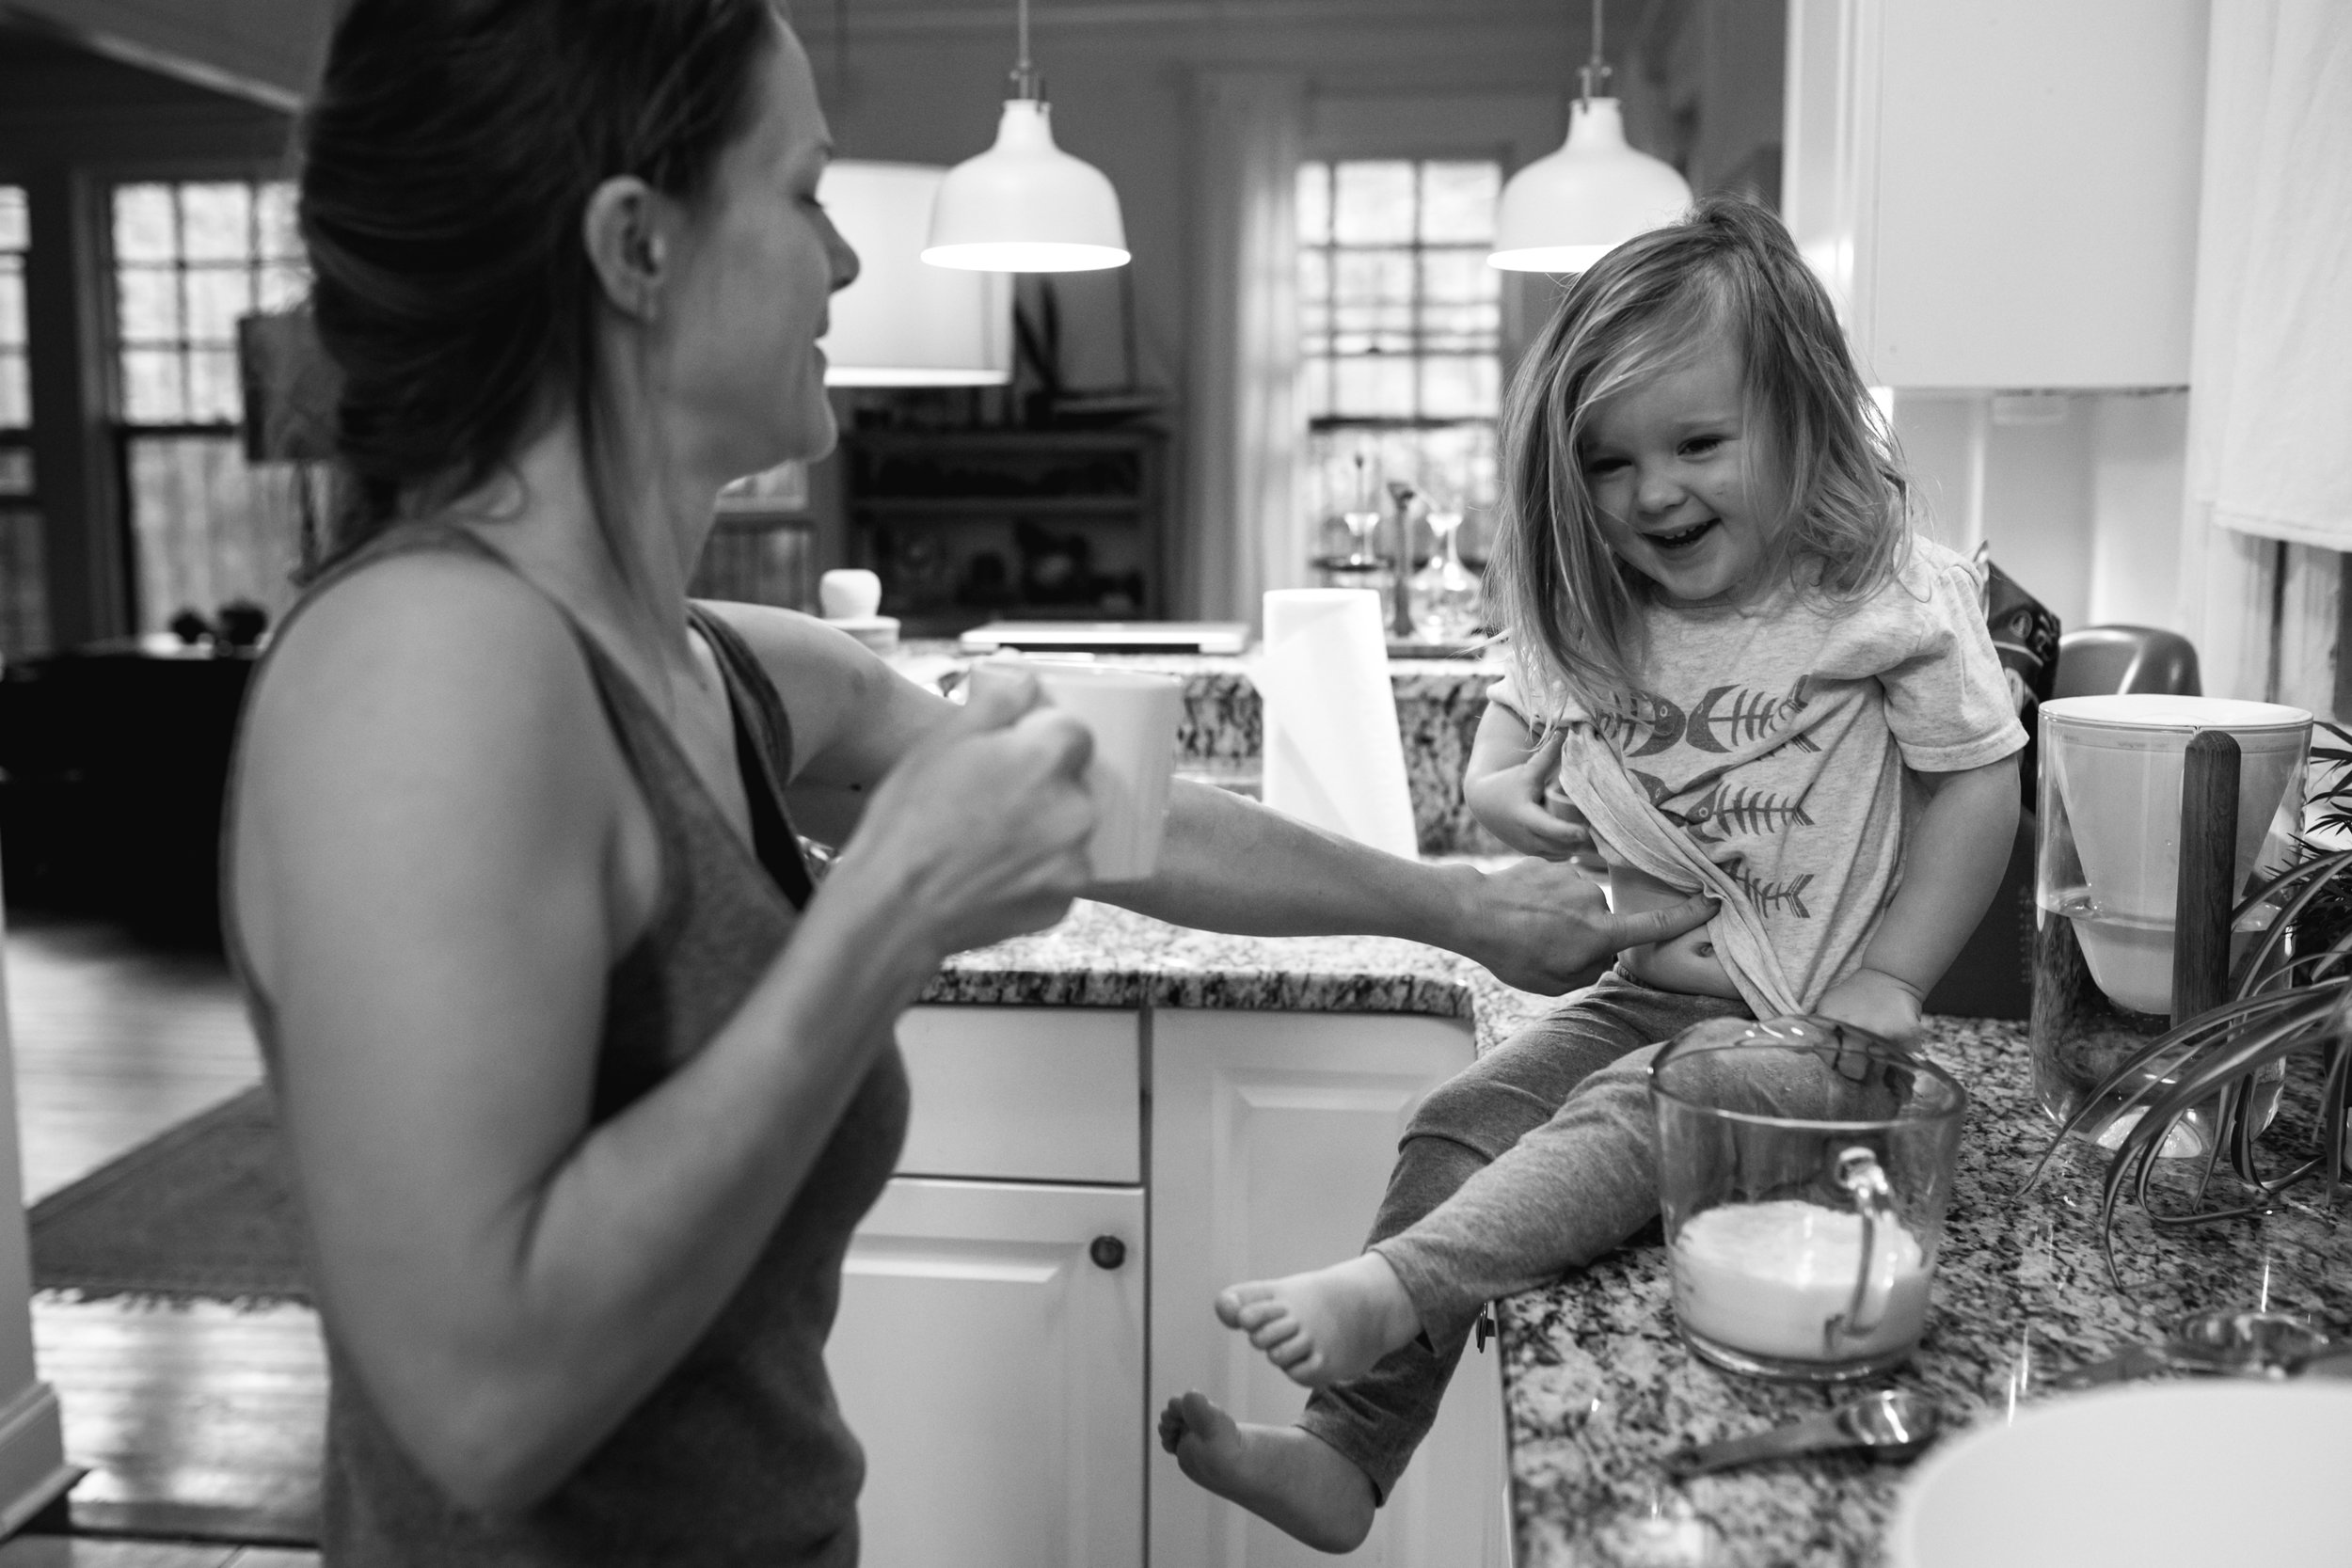 mother tickles daughter's stomach who is sitting on the kitchen counter